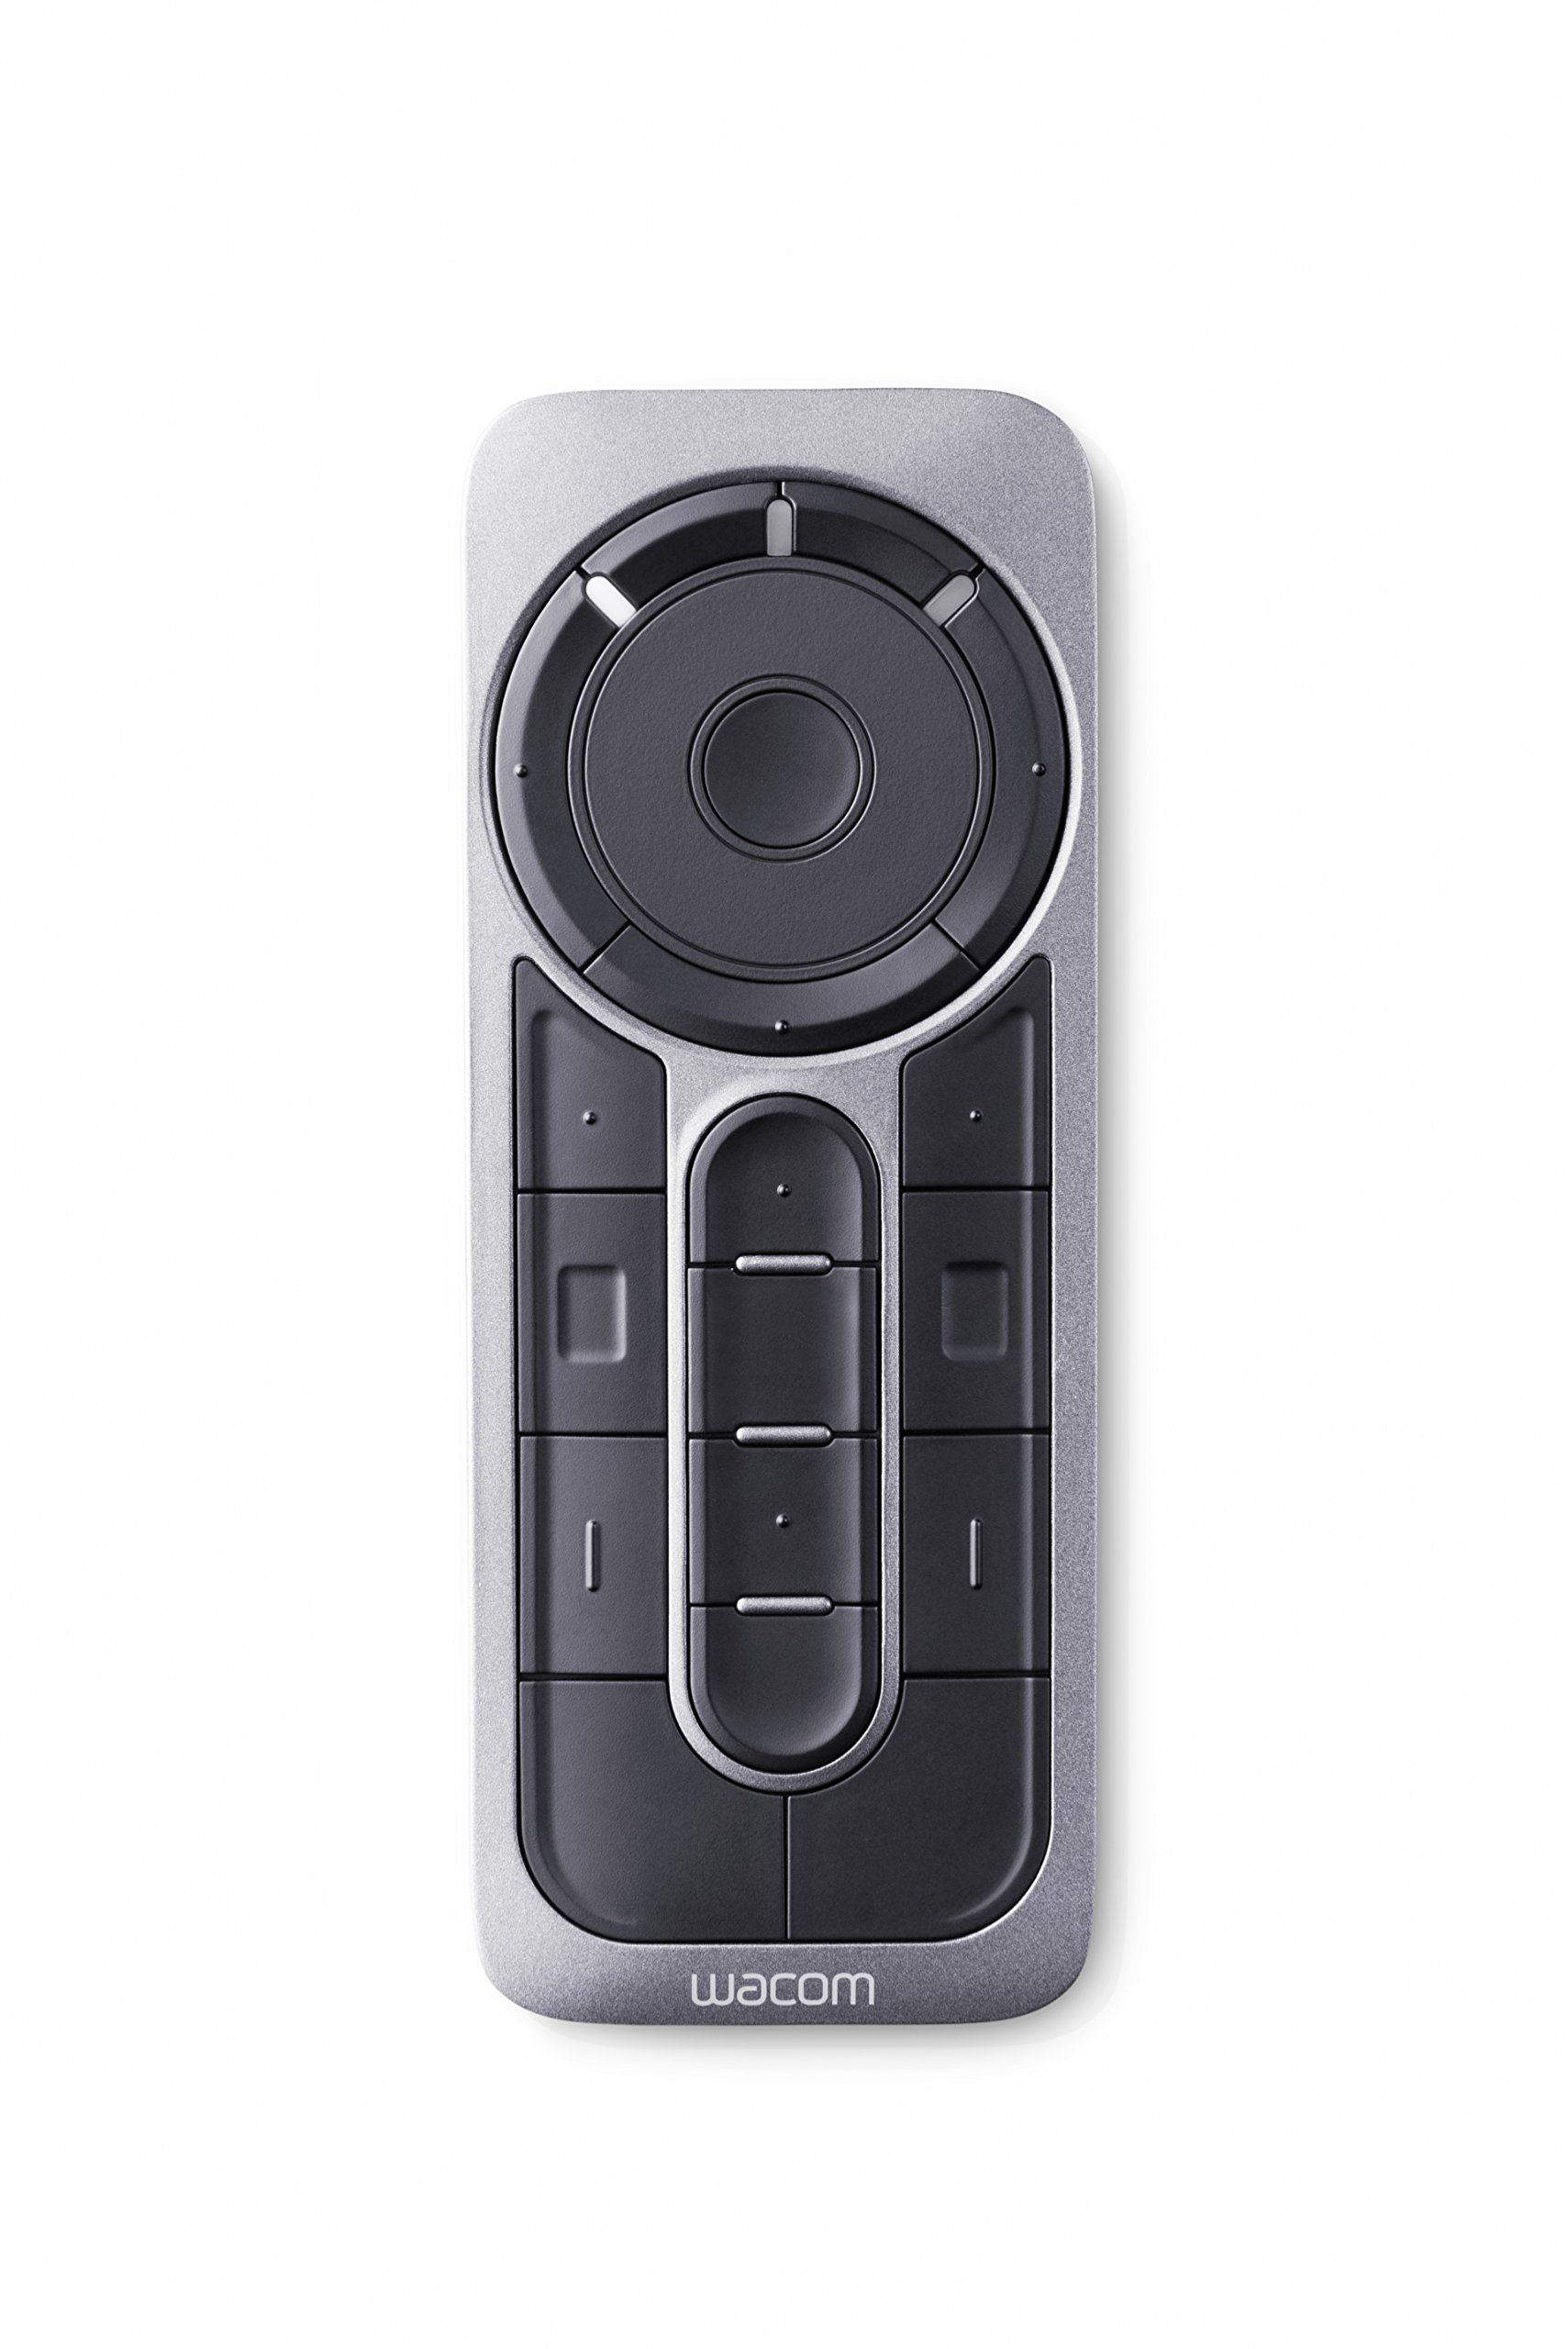 Wacom Express Key Remote for Cintiq & Intuos Pro (ACK411050) by Wacom